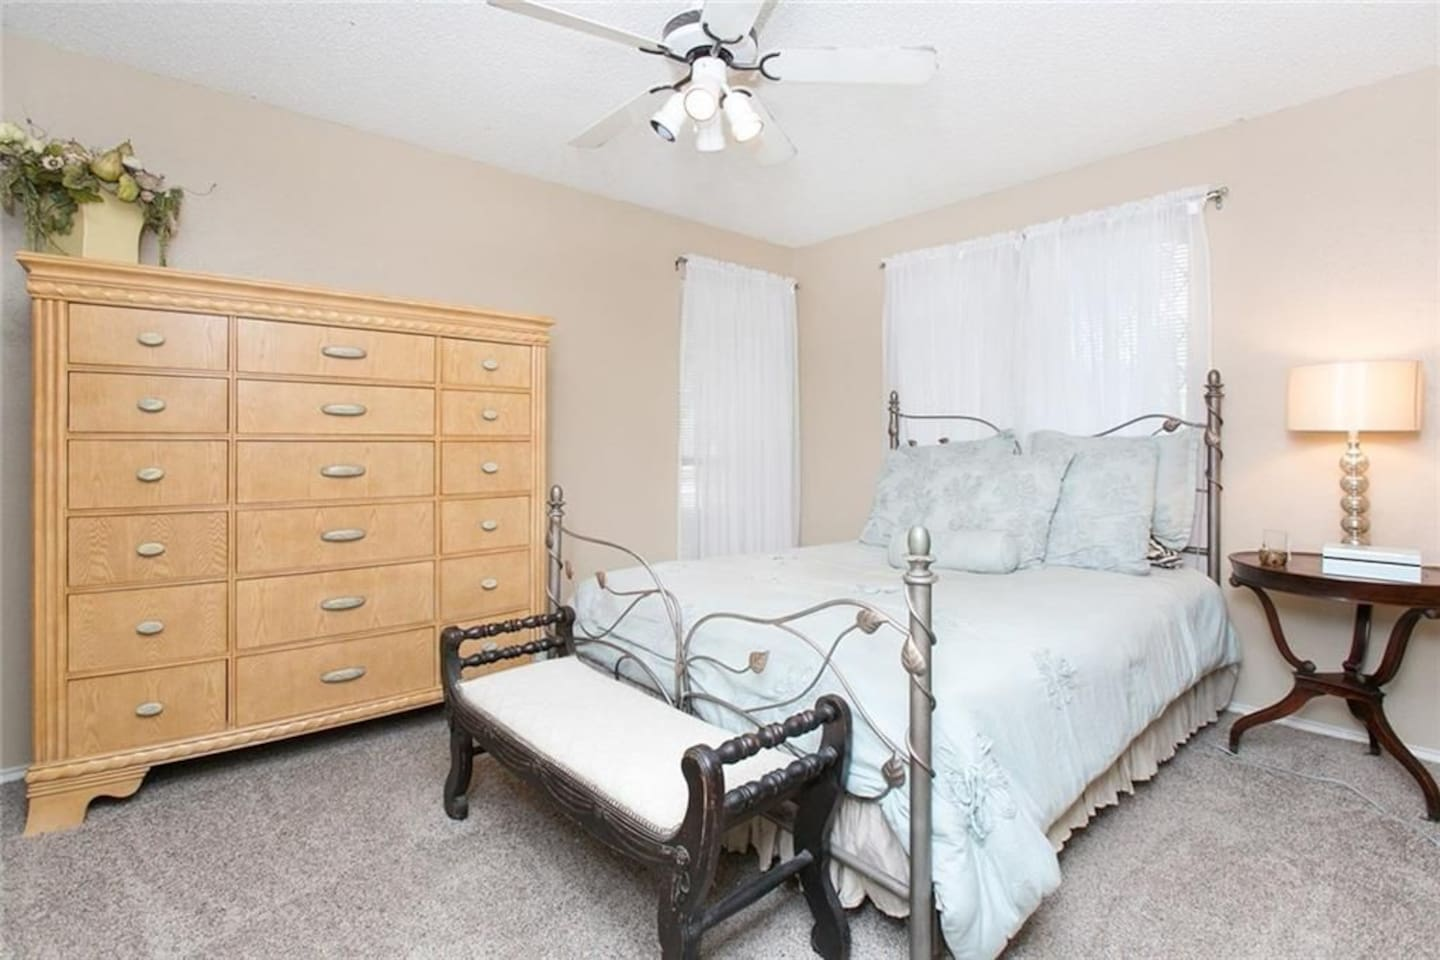 Comfortable Queen size bed with a closet space